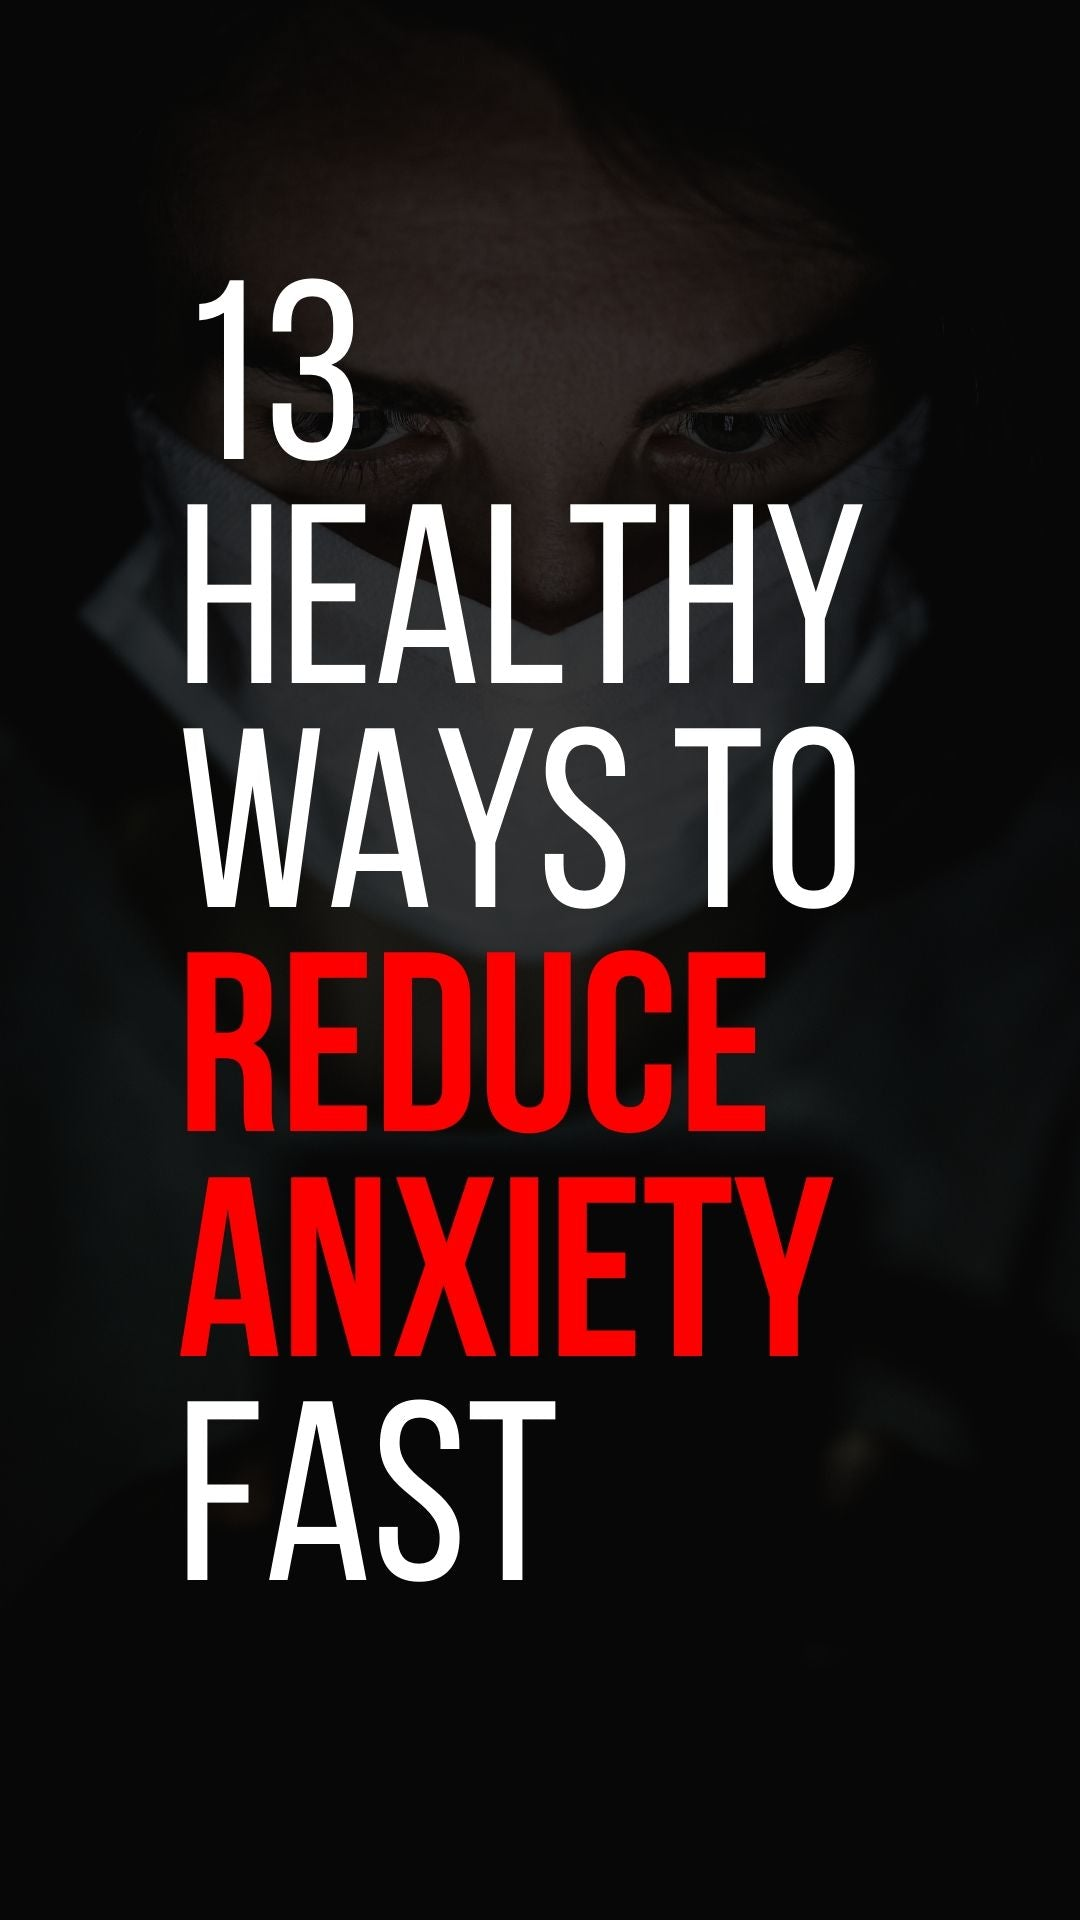 13 Healthy Ways to Reduce Anxiety Fast